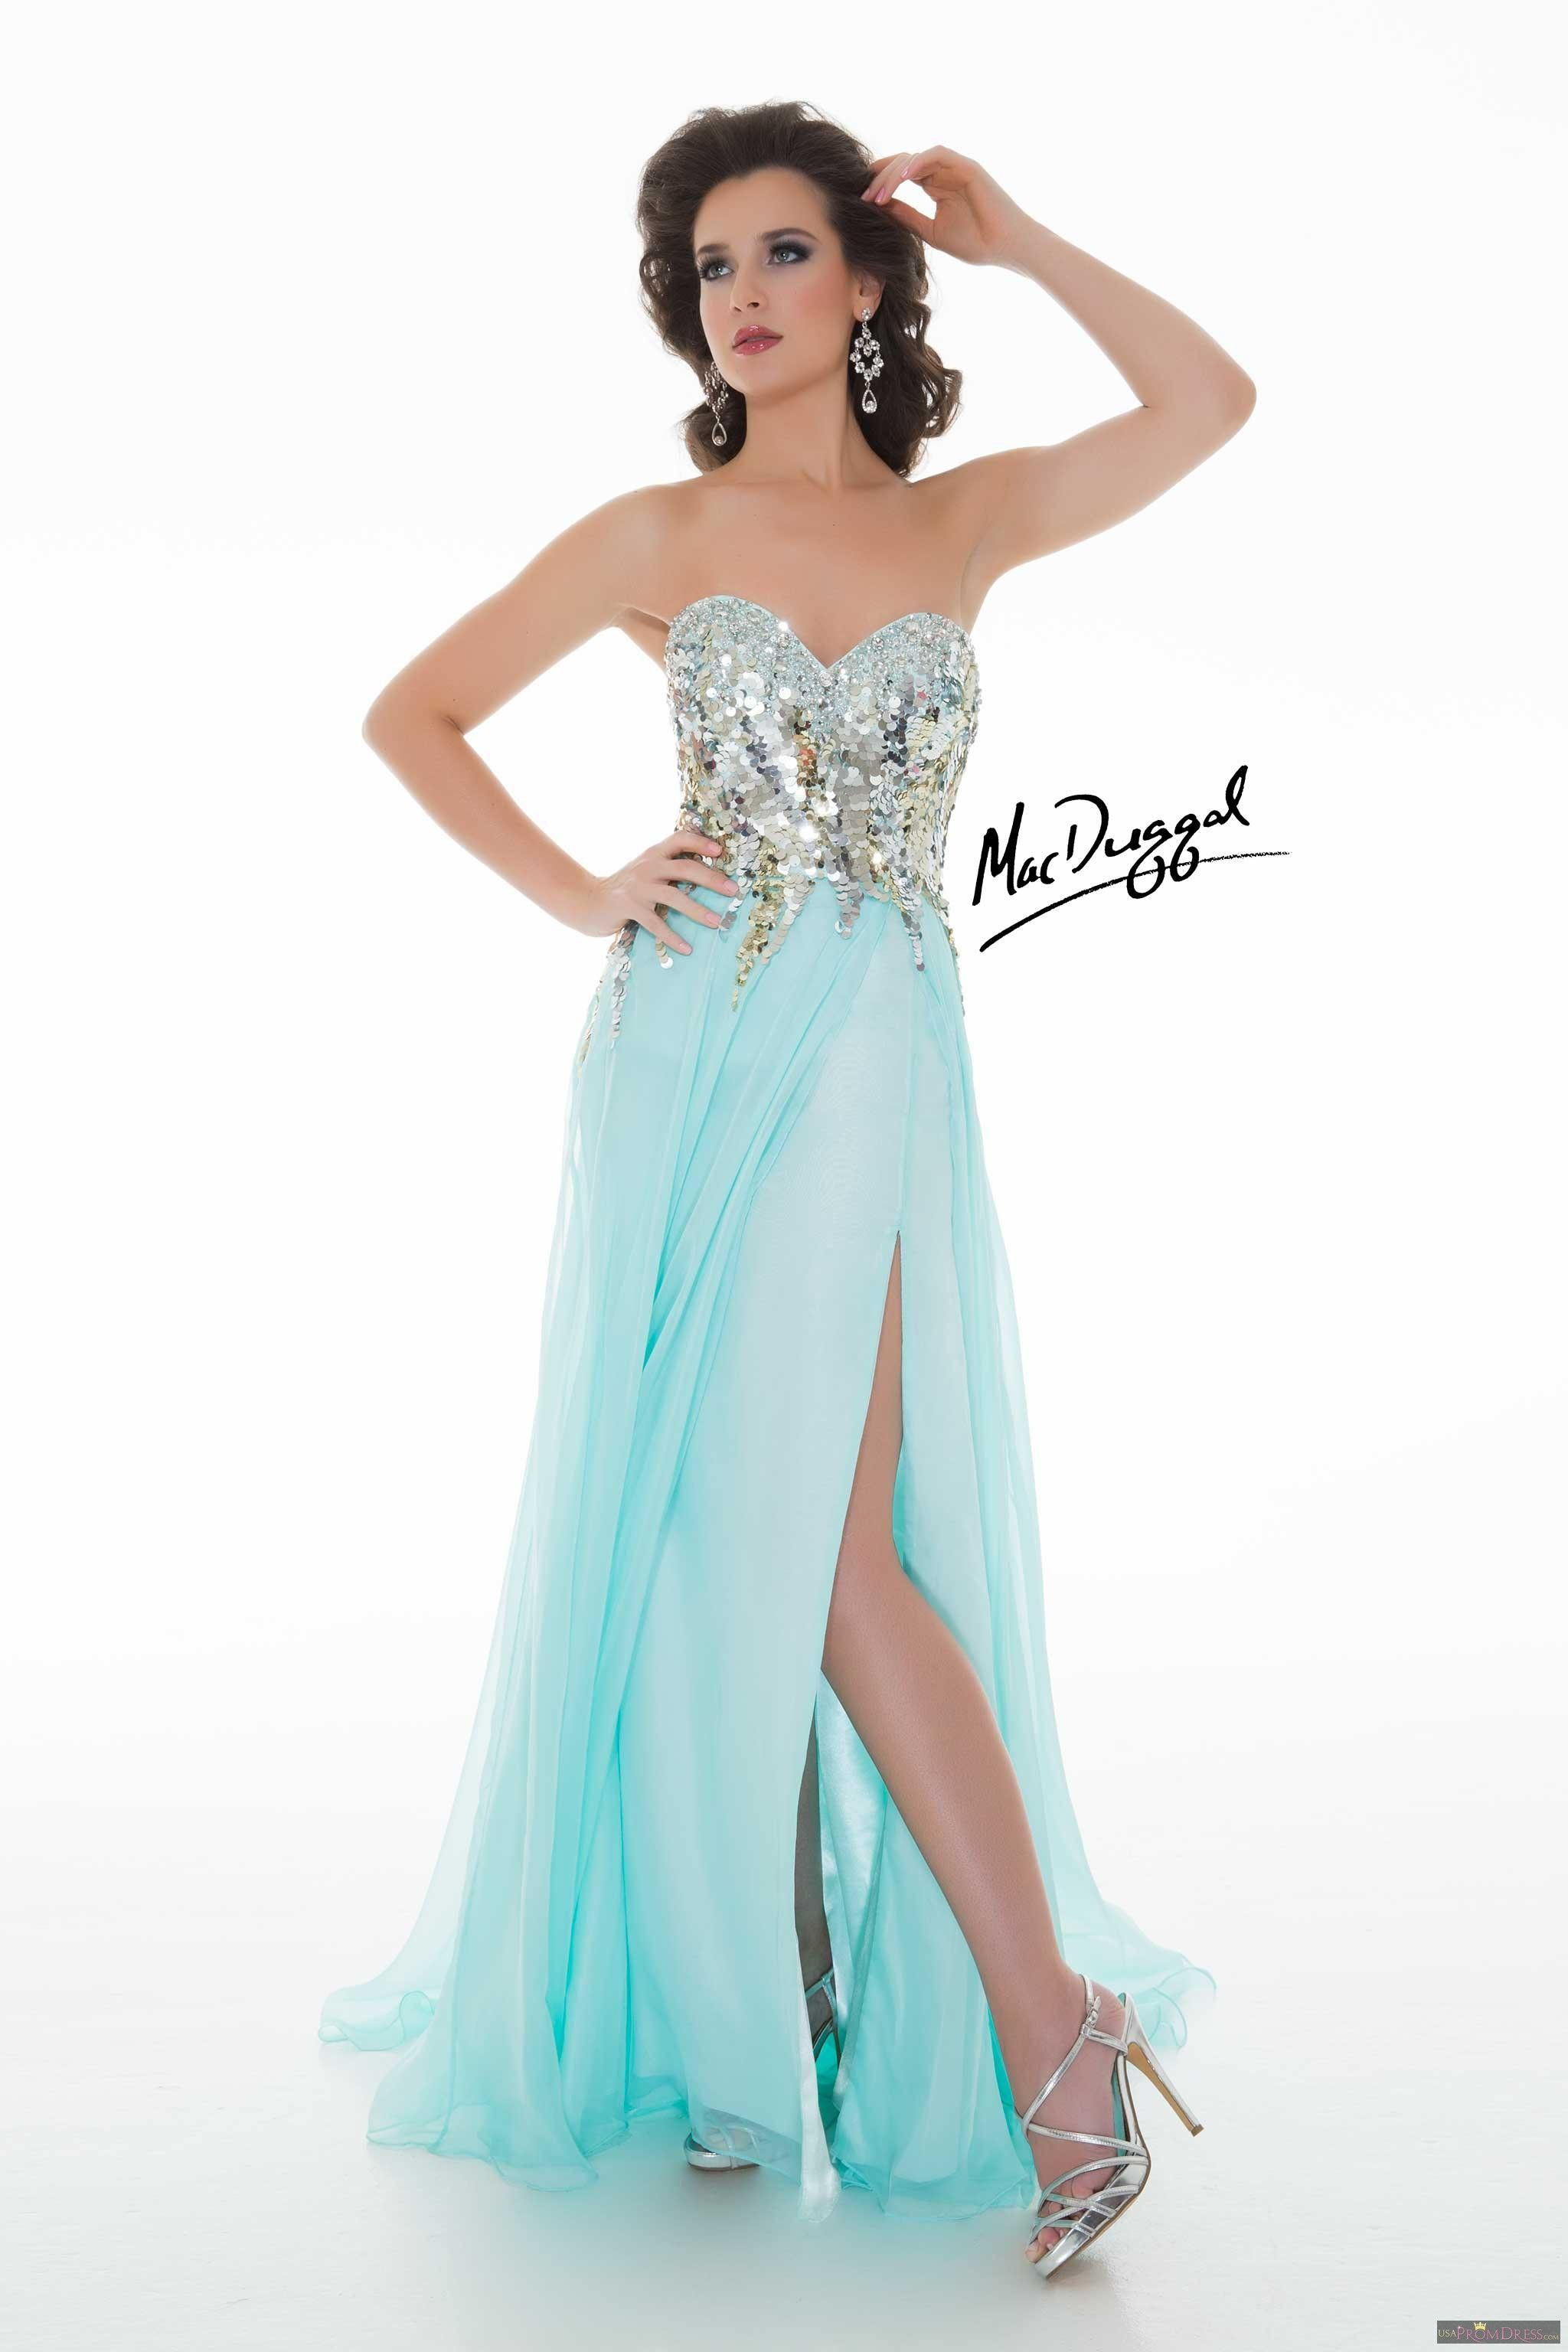 Mac Duggal Style 50116M - Strapless cross over pageant gown features a sweetheart neckline and fully embellished bodice. Flowy skirt with a sexy high slit. This glamorous dress is perfect for homecoming, prom or pageant.